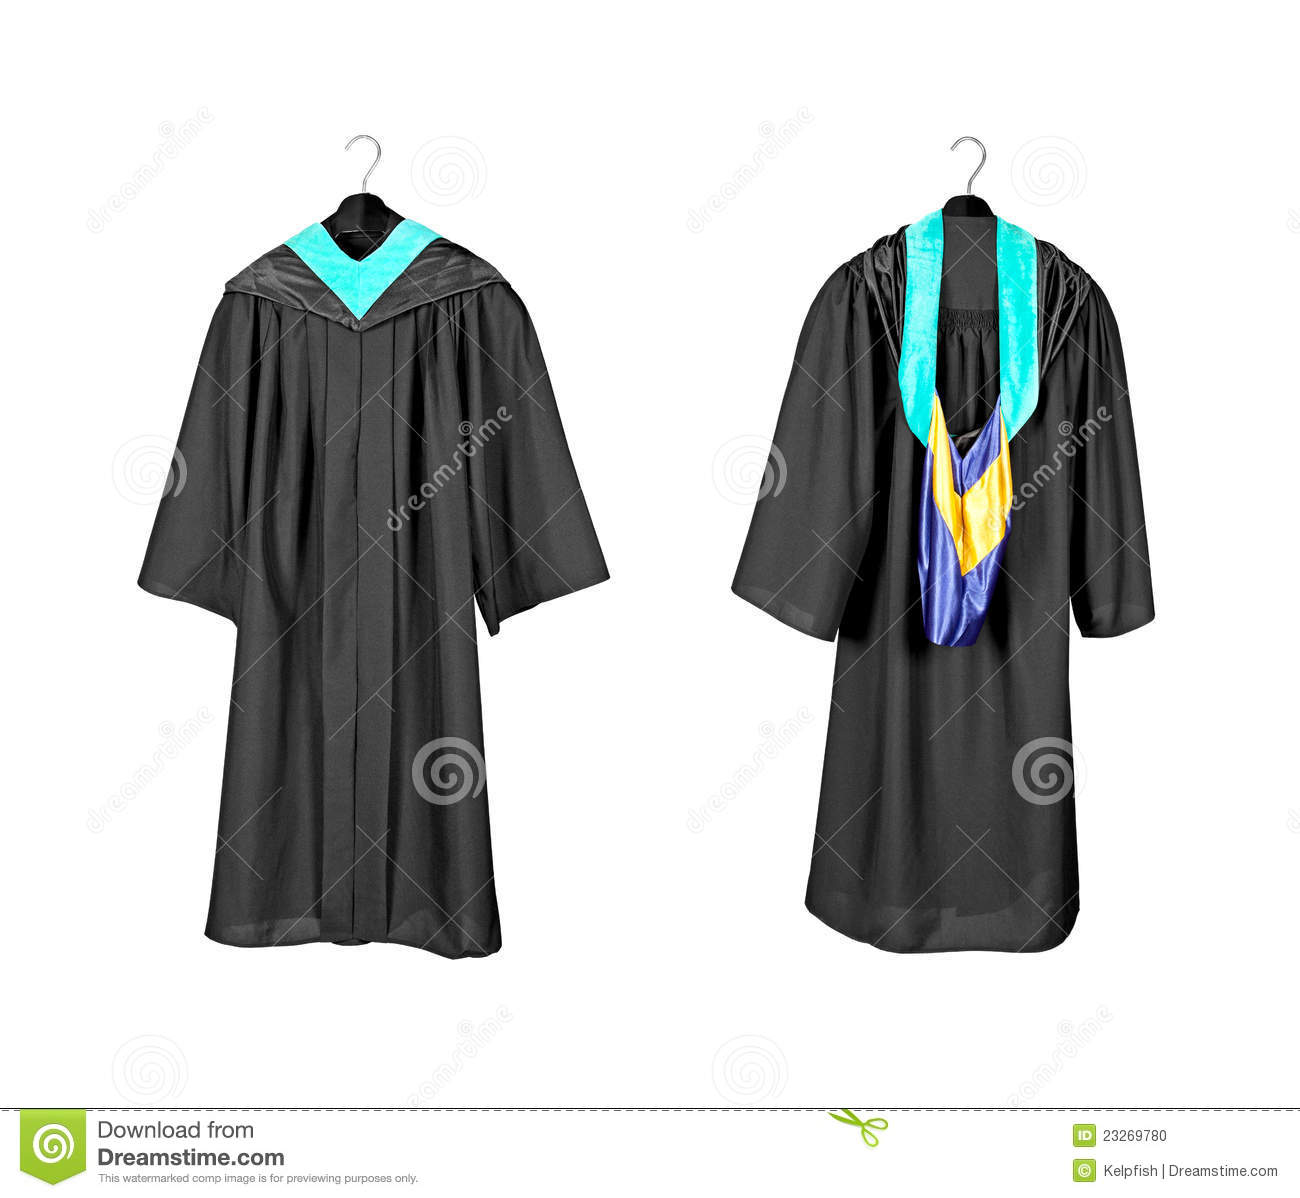 Graduation gown with hood stock photo. Image of dress - 23269780